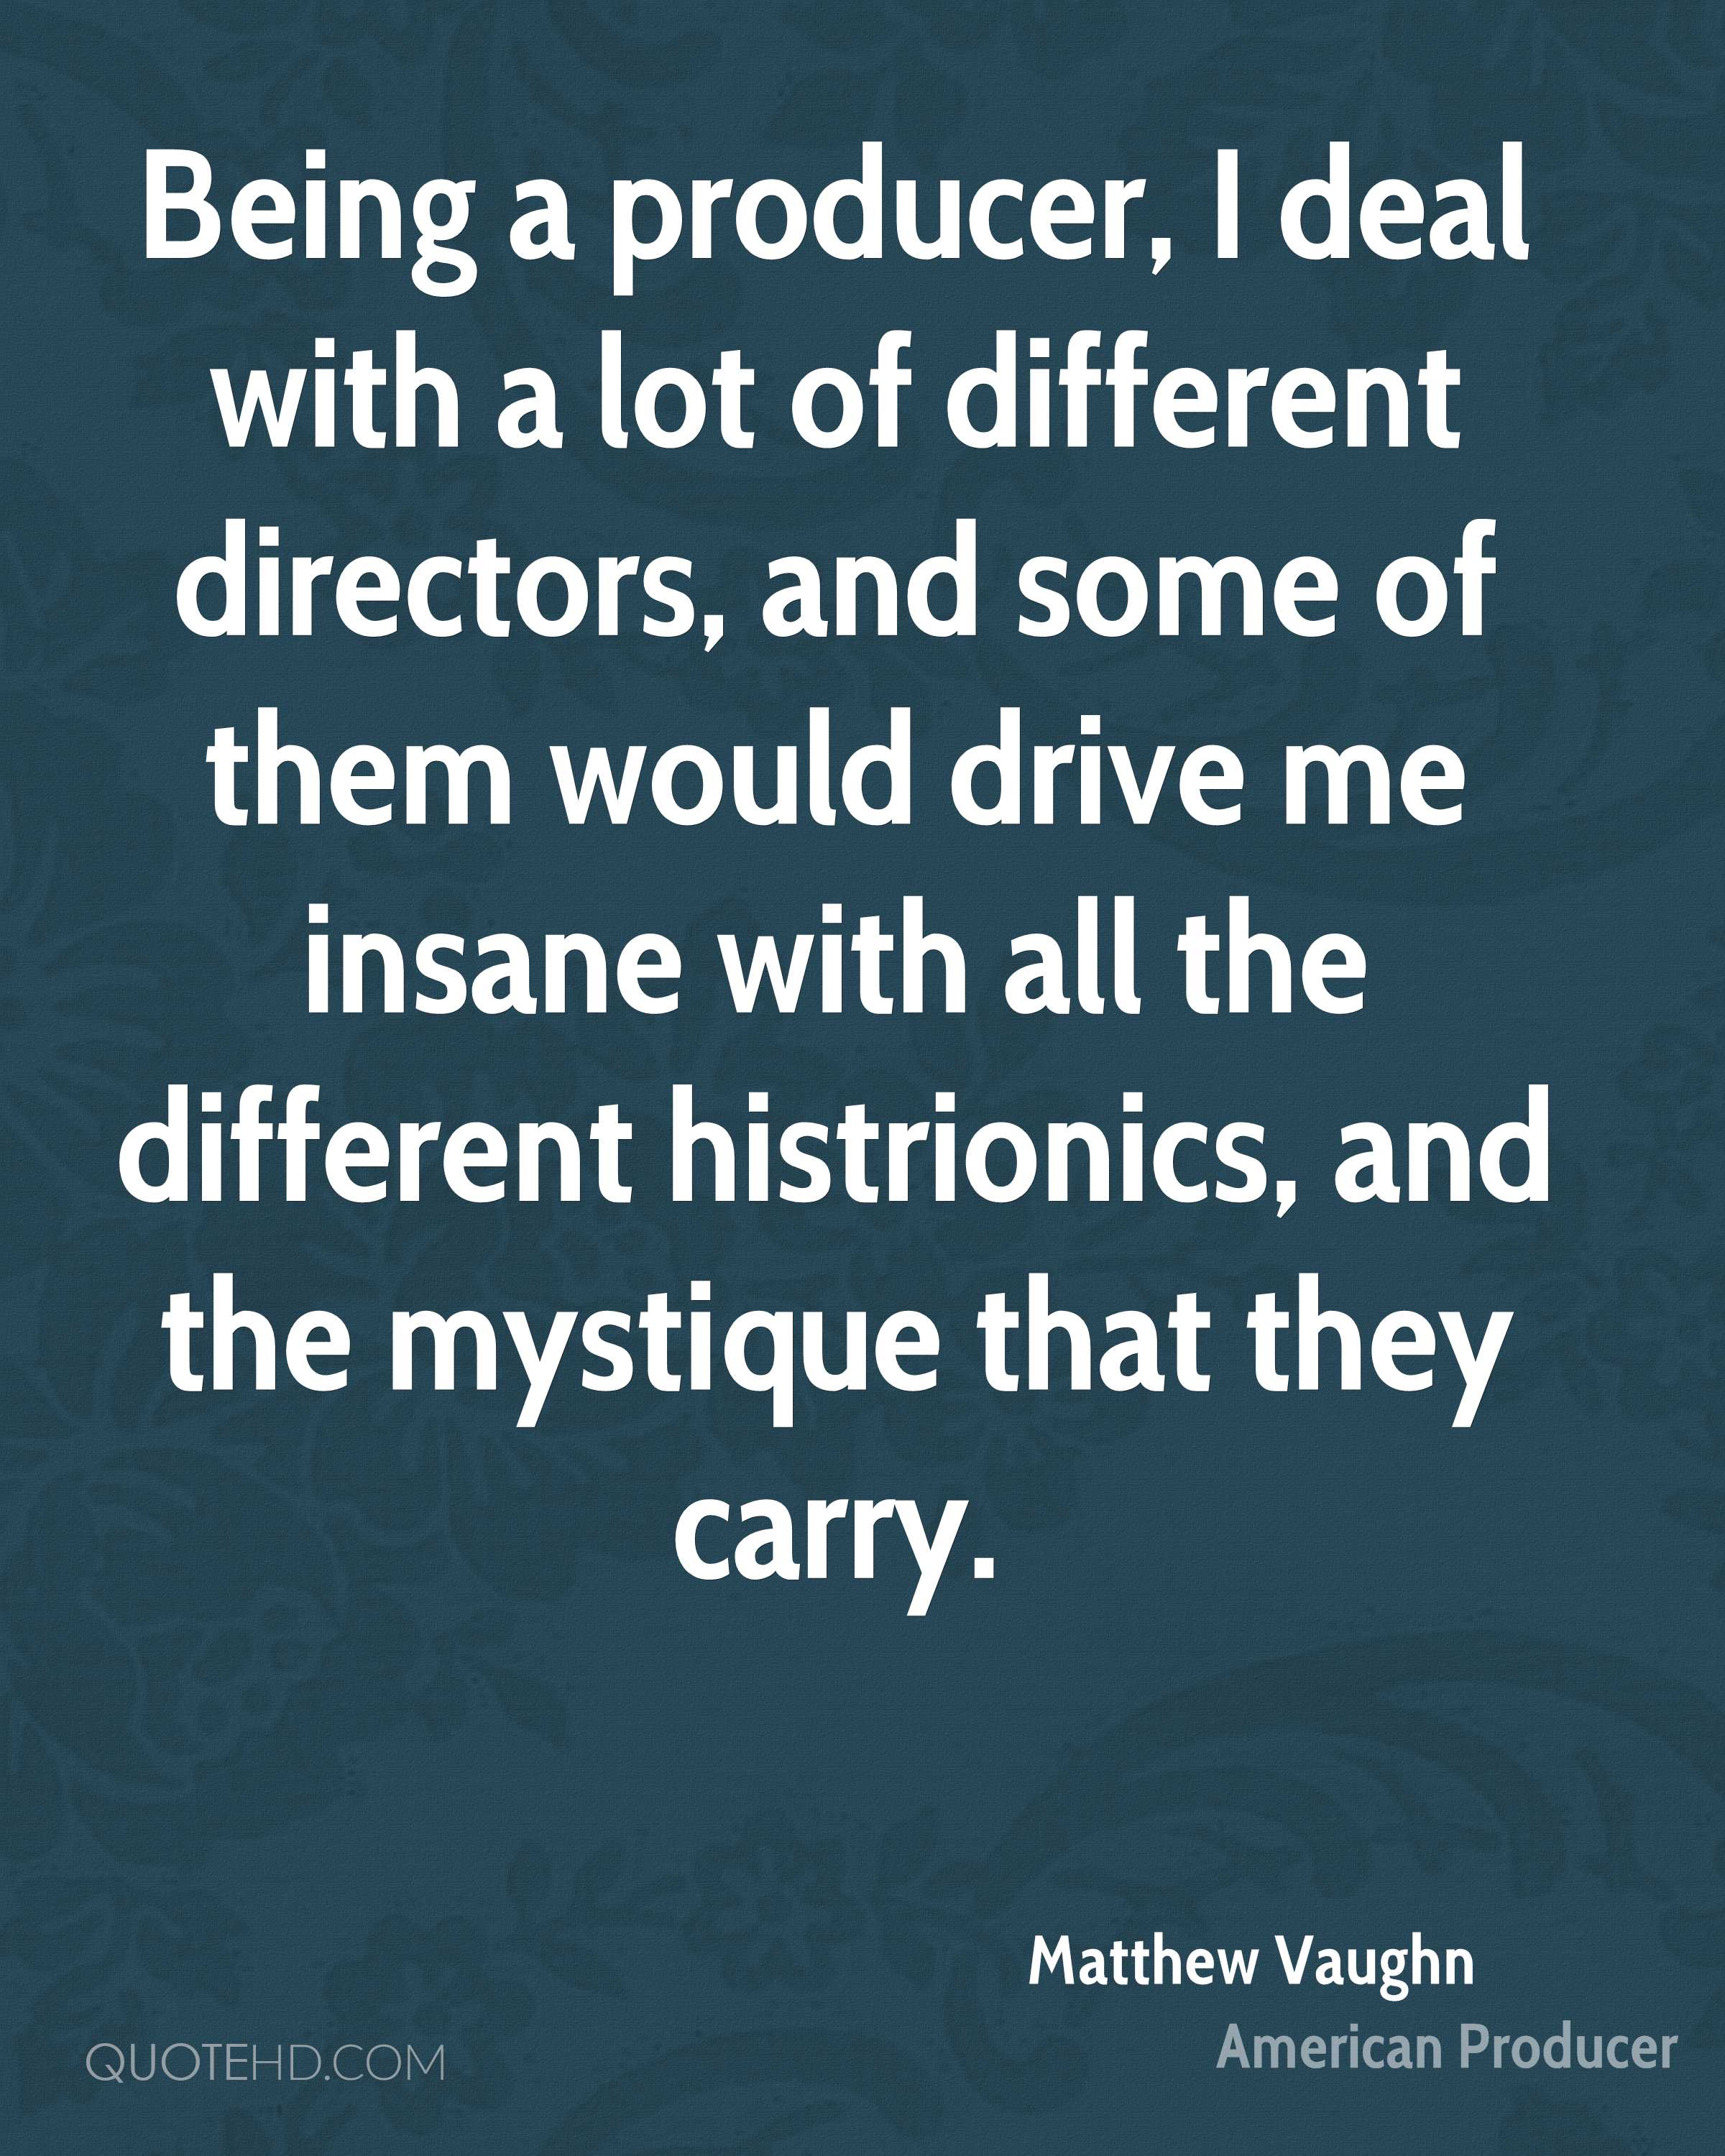 Being a producer, I deal with a lot of different directors, and some of them would drive me insane with all the different histrionics, and the mystique that they carry.